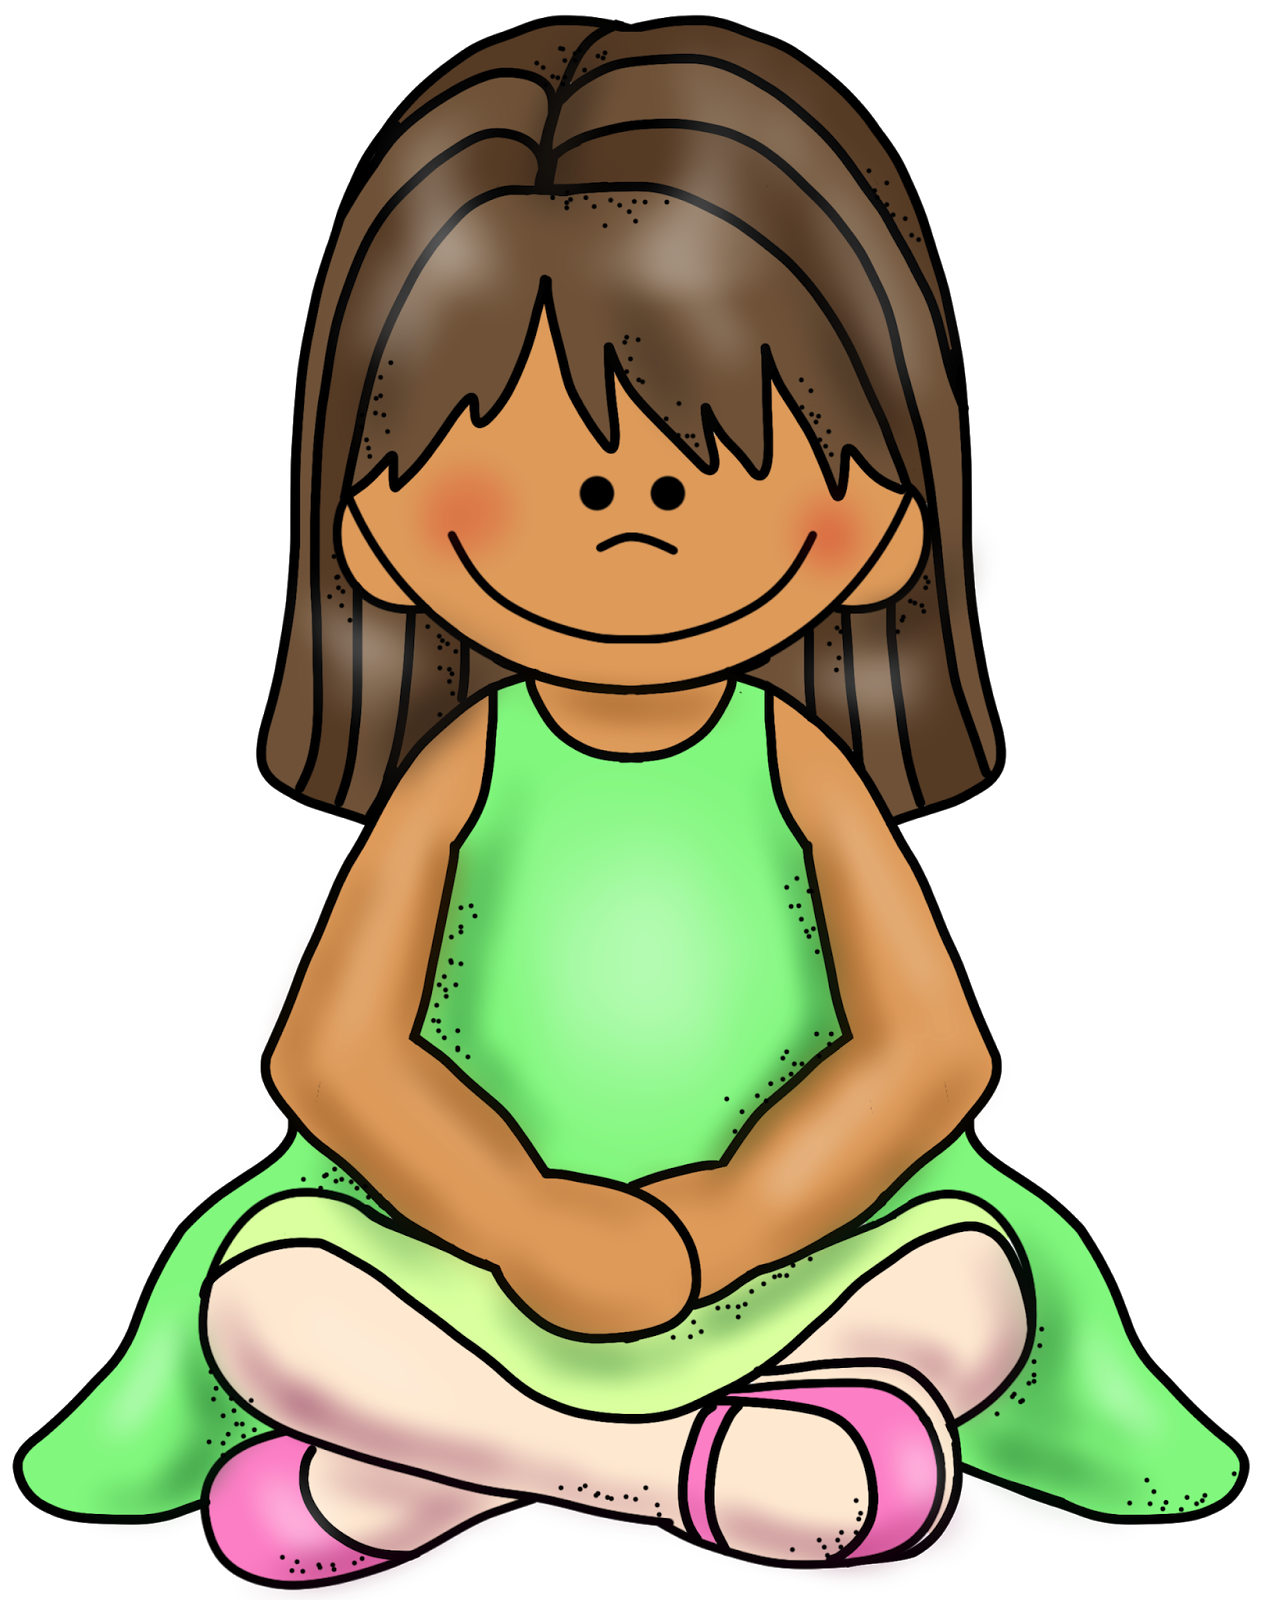 Criss cross sitting clipart jpg royalty free library Child Sitting Cross Legged Clipart (15+) jpg royalty free library